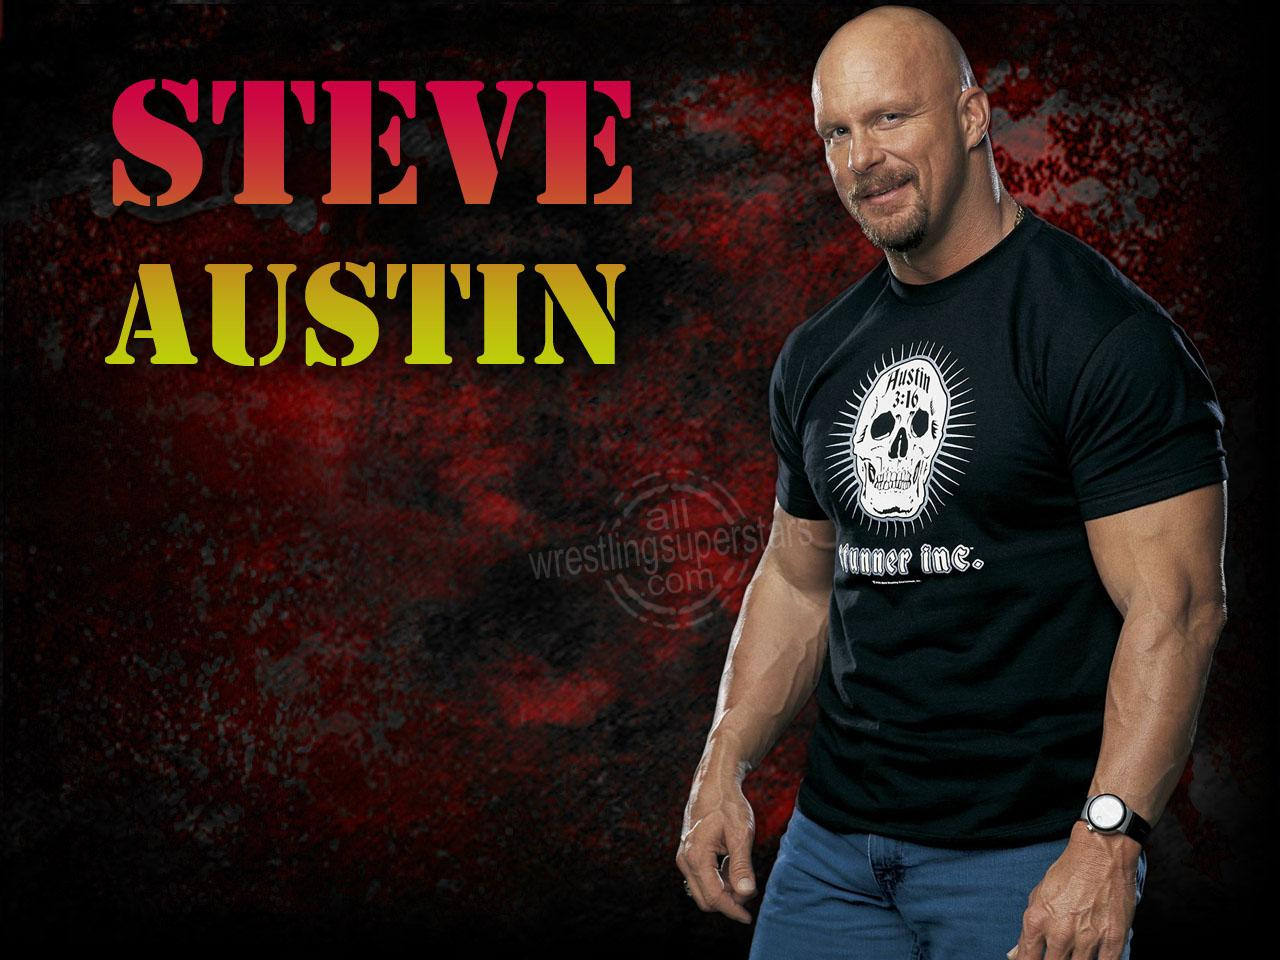 Stone Cold Steve Austin Wallpapers 1280x960